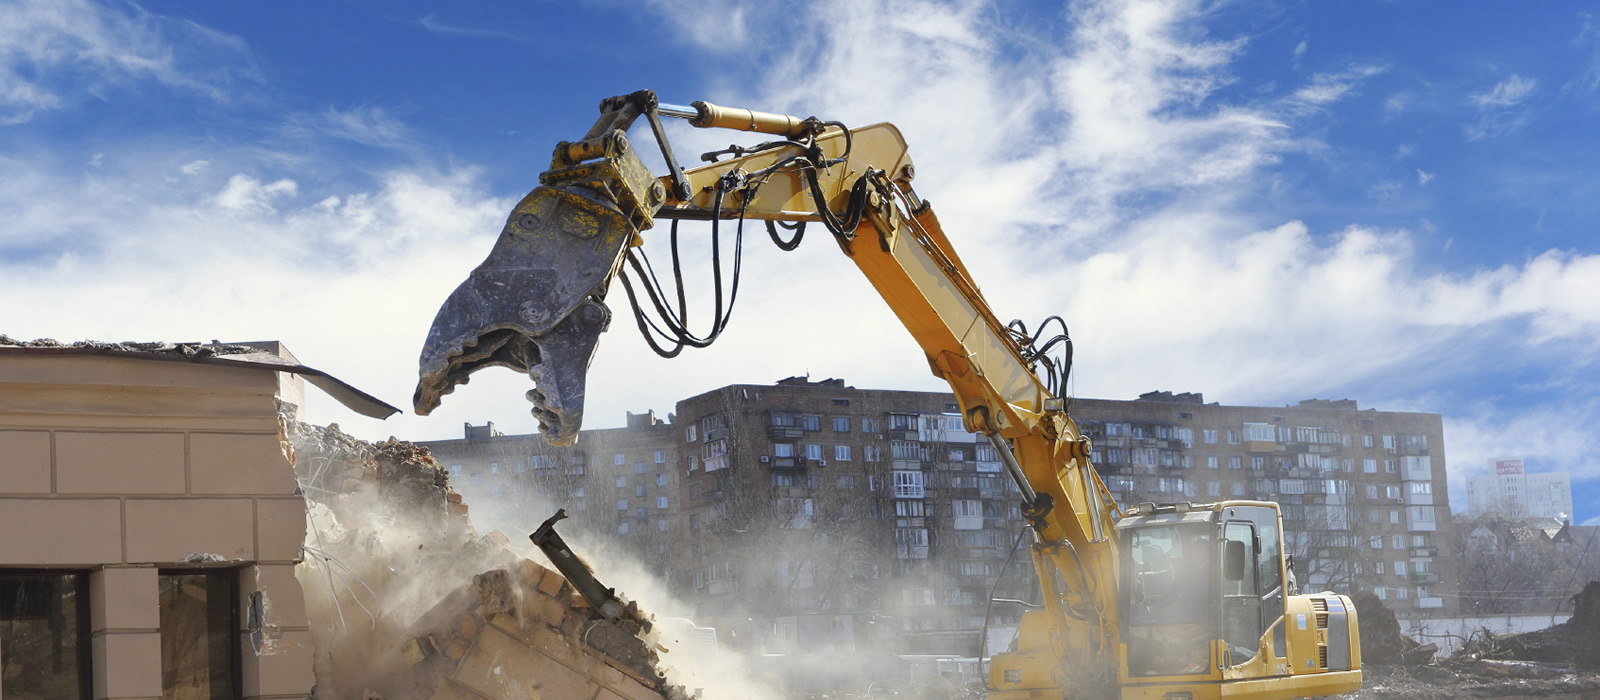 Demolition Machinery from Prichards Contracting